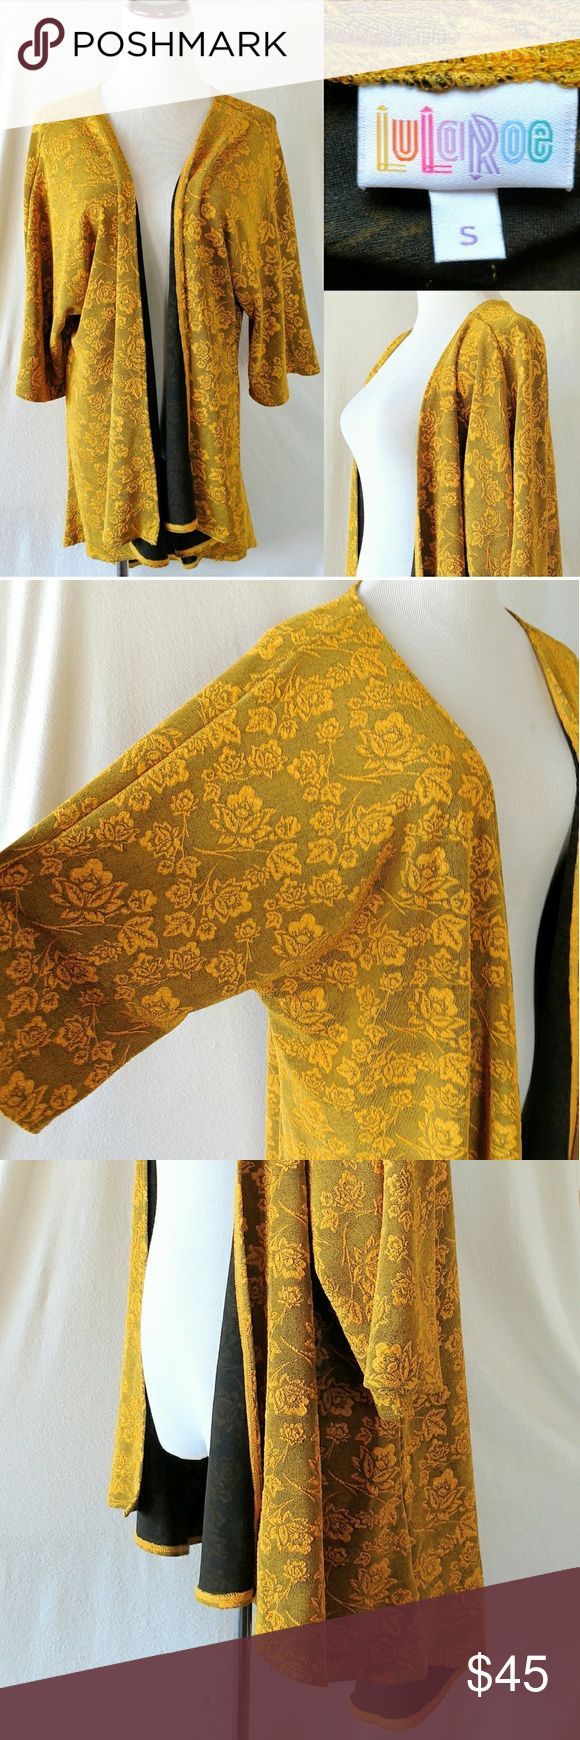 LuLaRoe Yellow Gold Lindsay Kimono Jacket Small This Lindsay is a beautiful mustard yellow and is made of a thicker material which makes it hang perfectly!  Looks fantastic with lots of leggings!  Tags: Lularoe, Lindsay, Lindsey, yellow, gold, mustard, flowers, jacquard, thick, warm, kimono, open jacket, s, small, roses, free shipping LuLaRoe Jackets & Coats